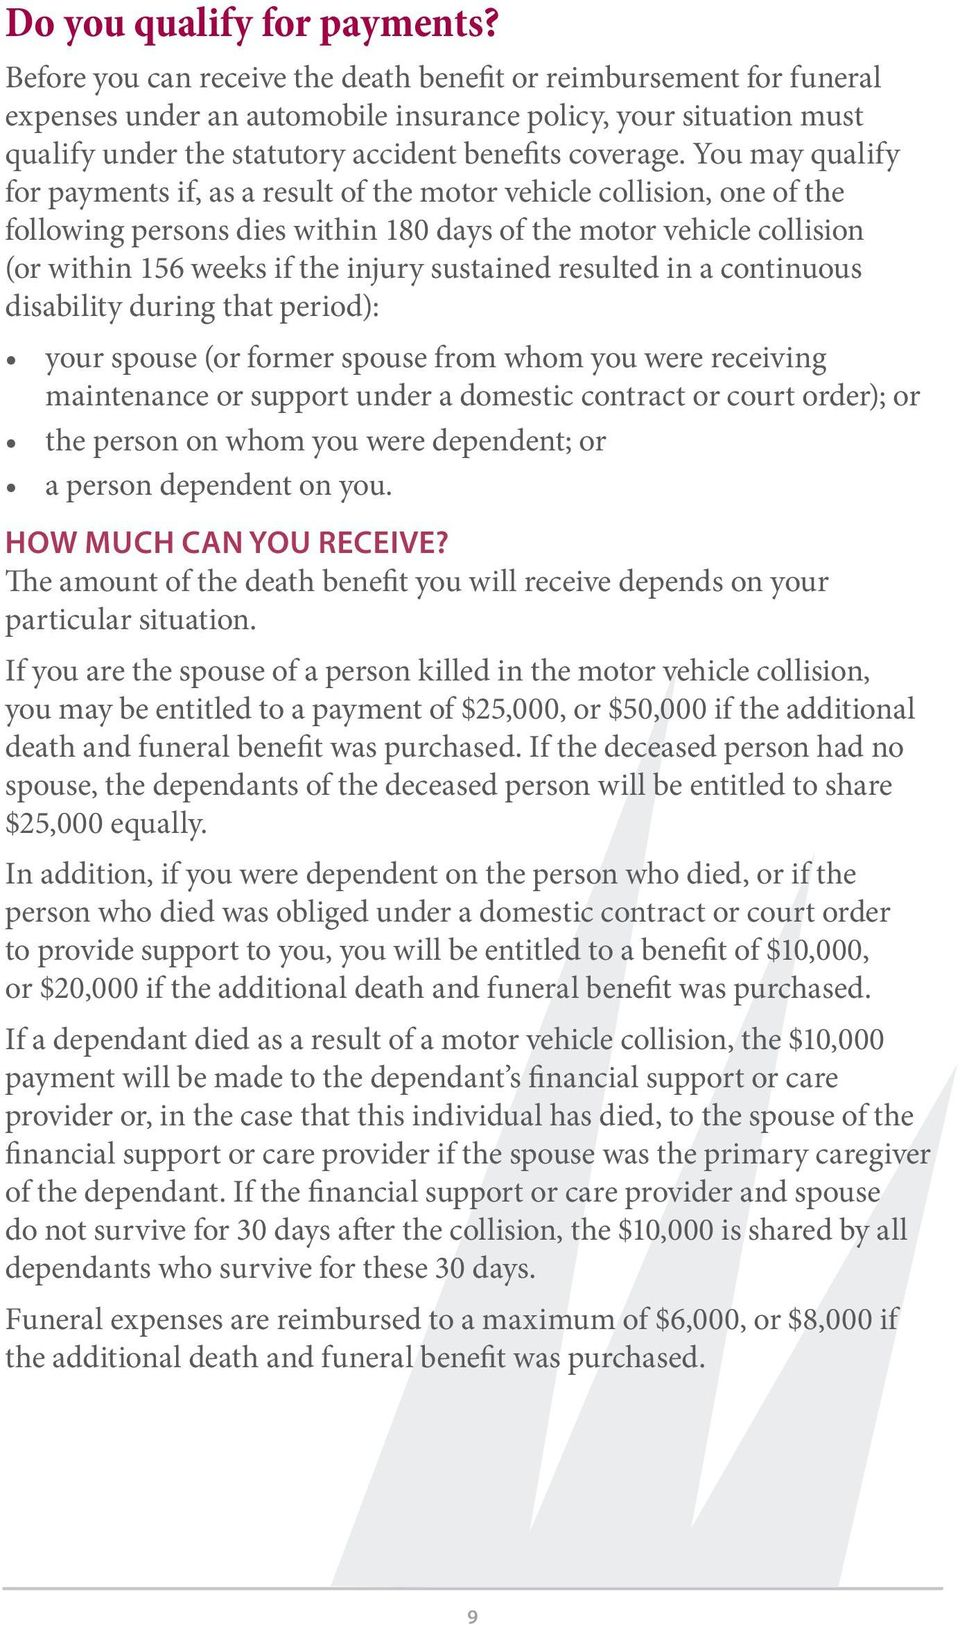 You may qualify for payments if, as a result of the motor vehicle collision, one of the following persons dies within 180 days of the motor vehicle collision (or within 156 weeks if the injury